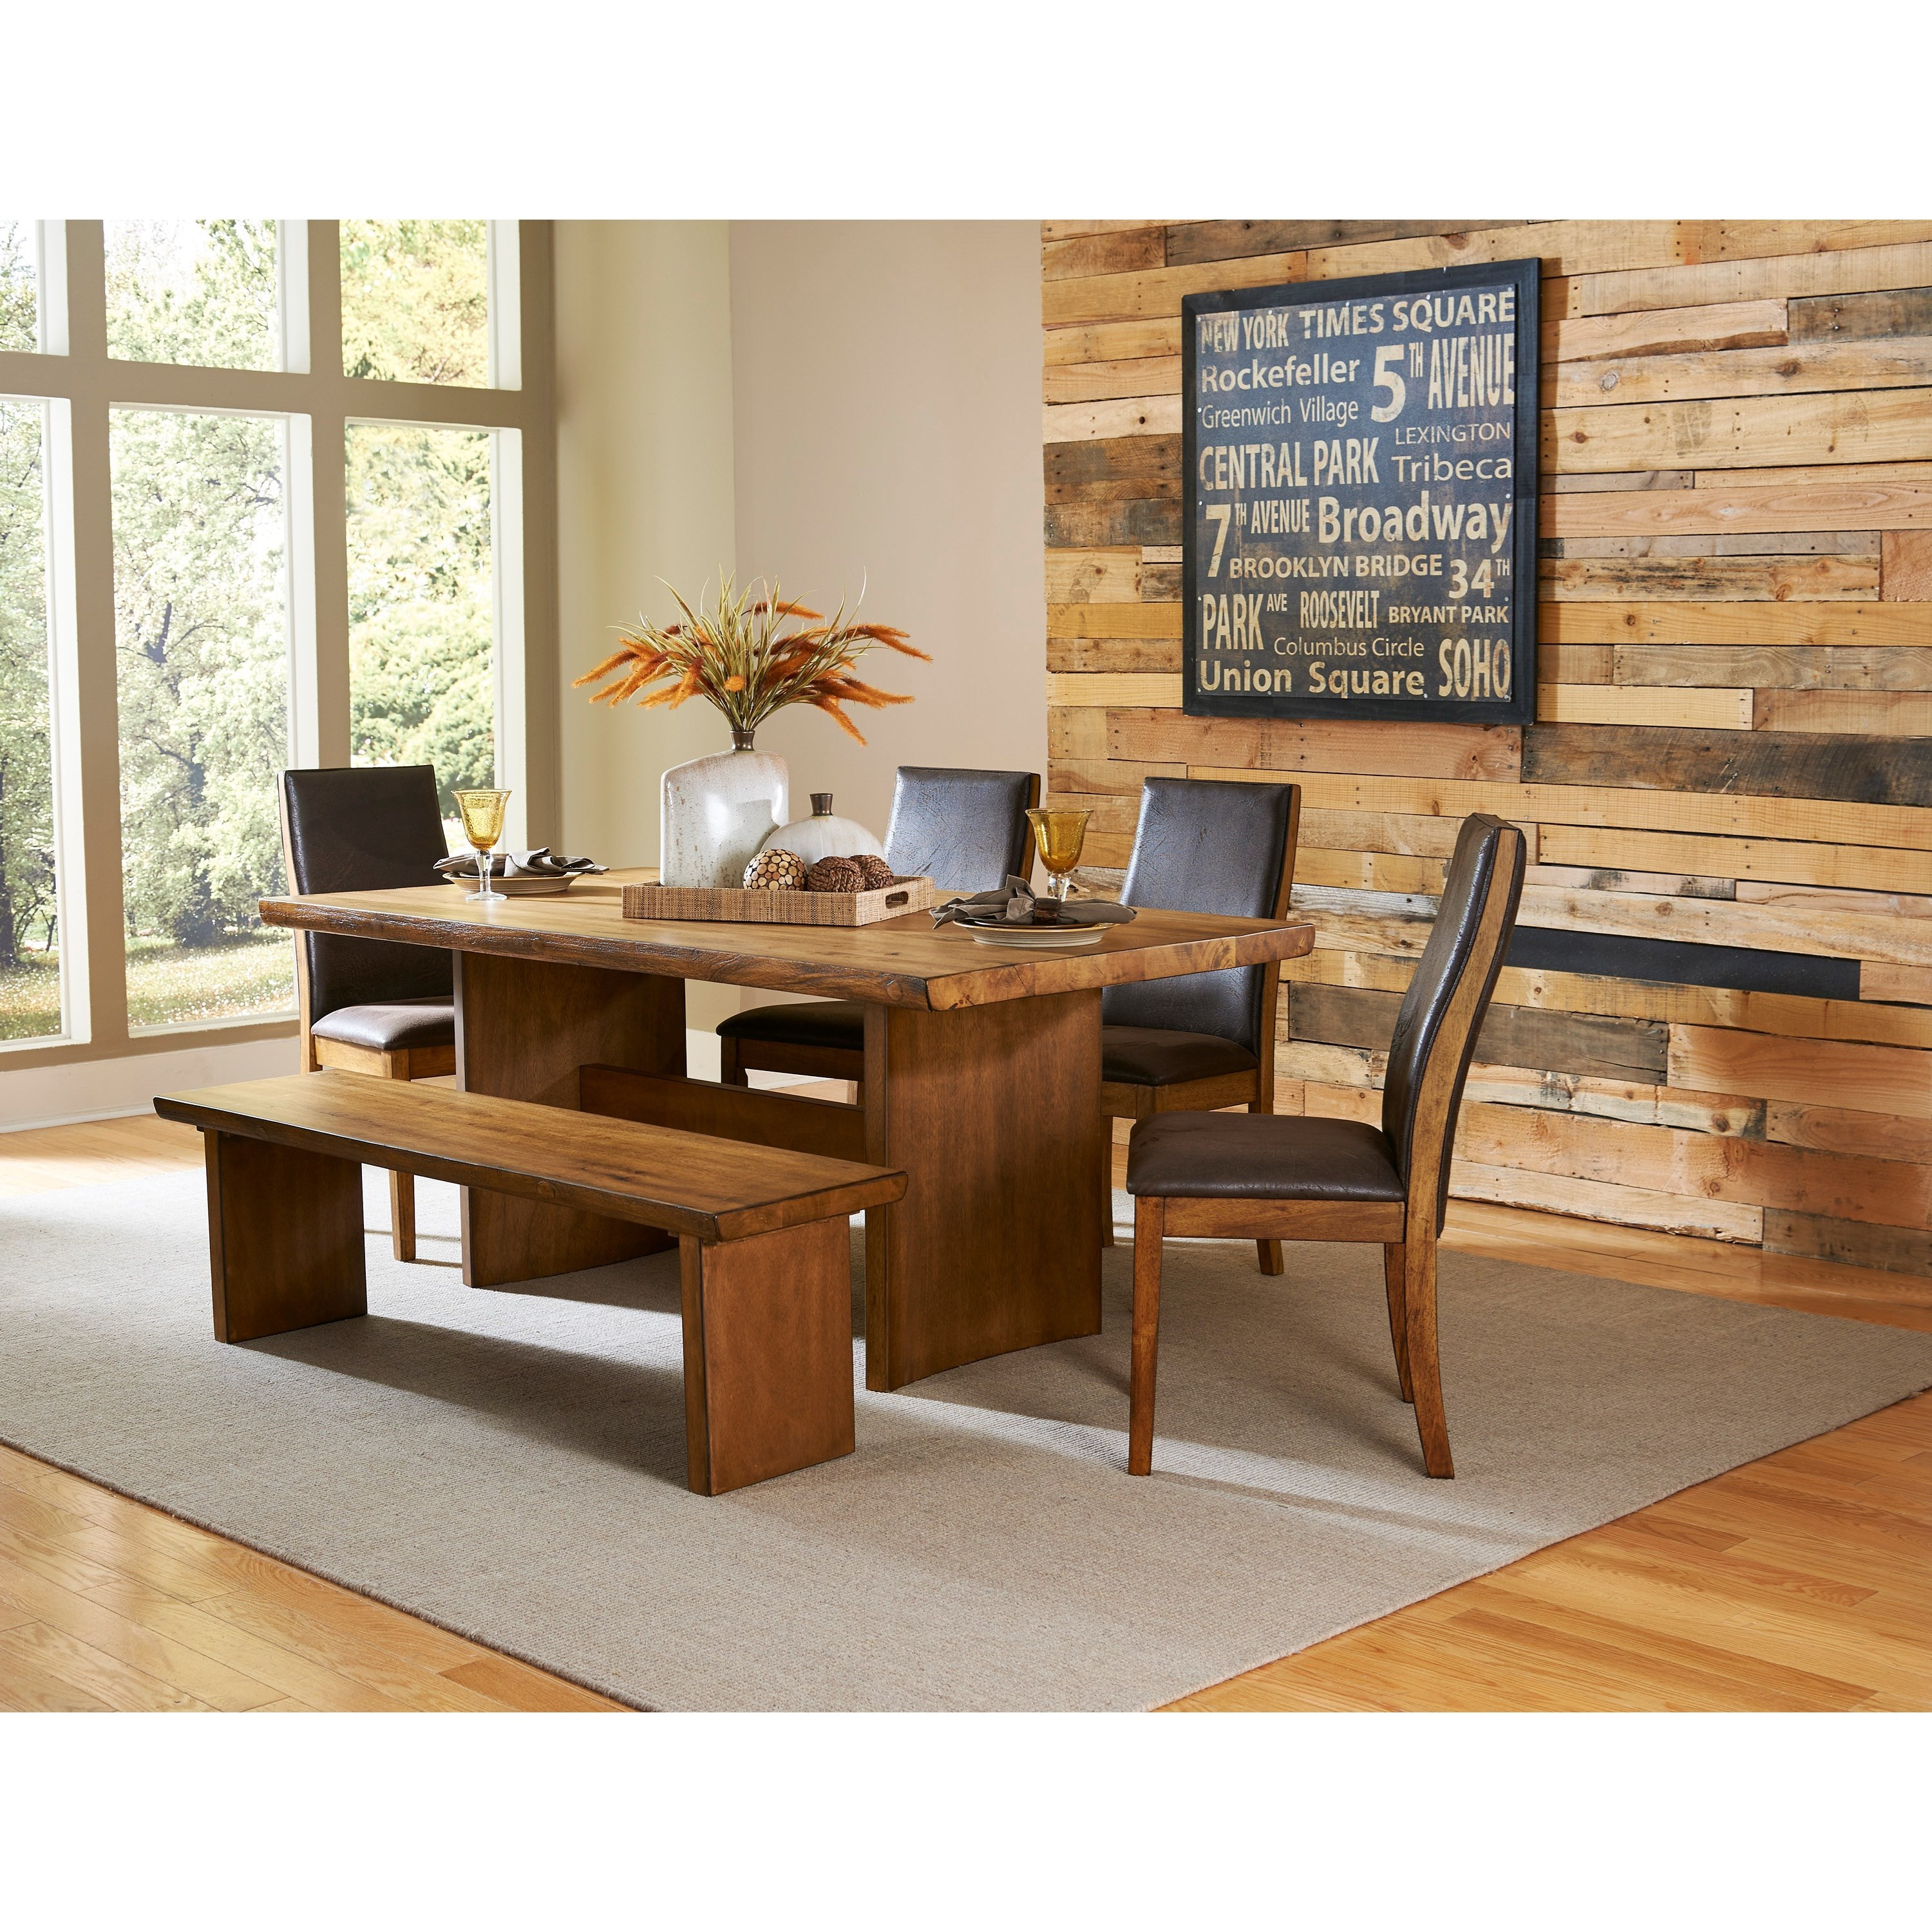 5479 Table and Chair Set with Bench by Homelegance Furniture at Del Sol Furniture